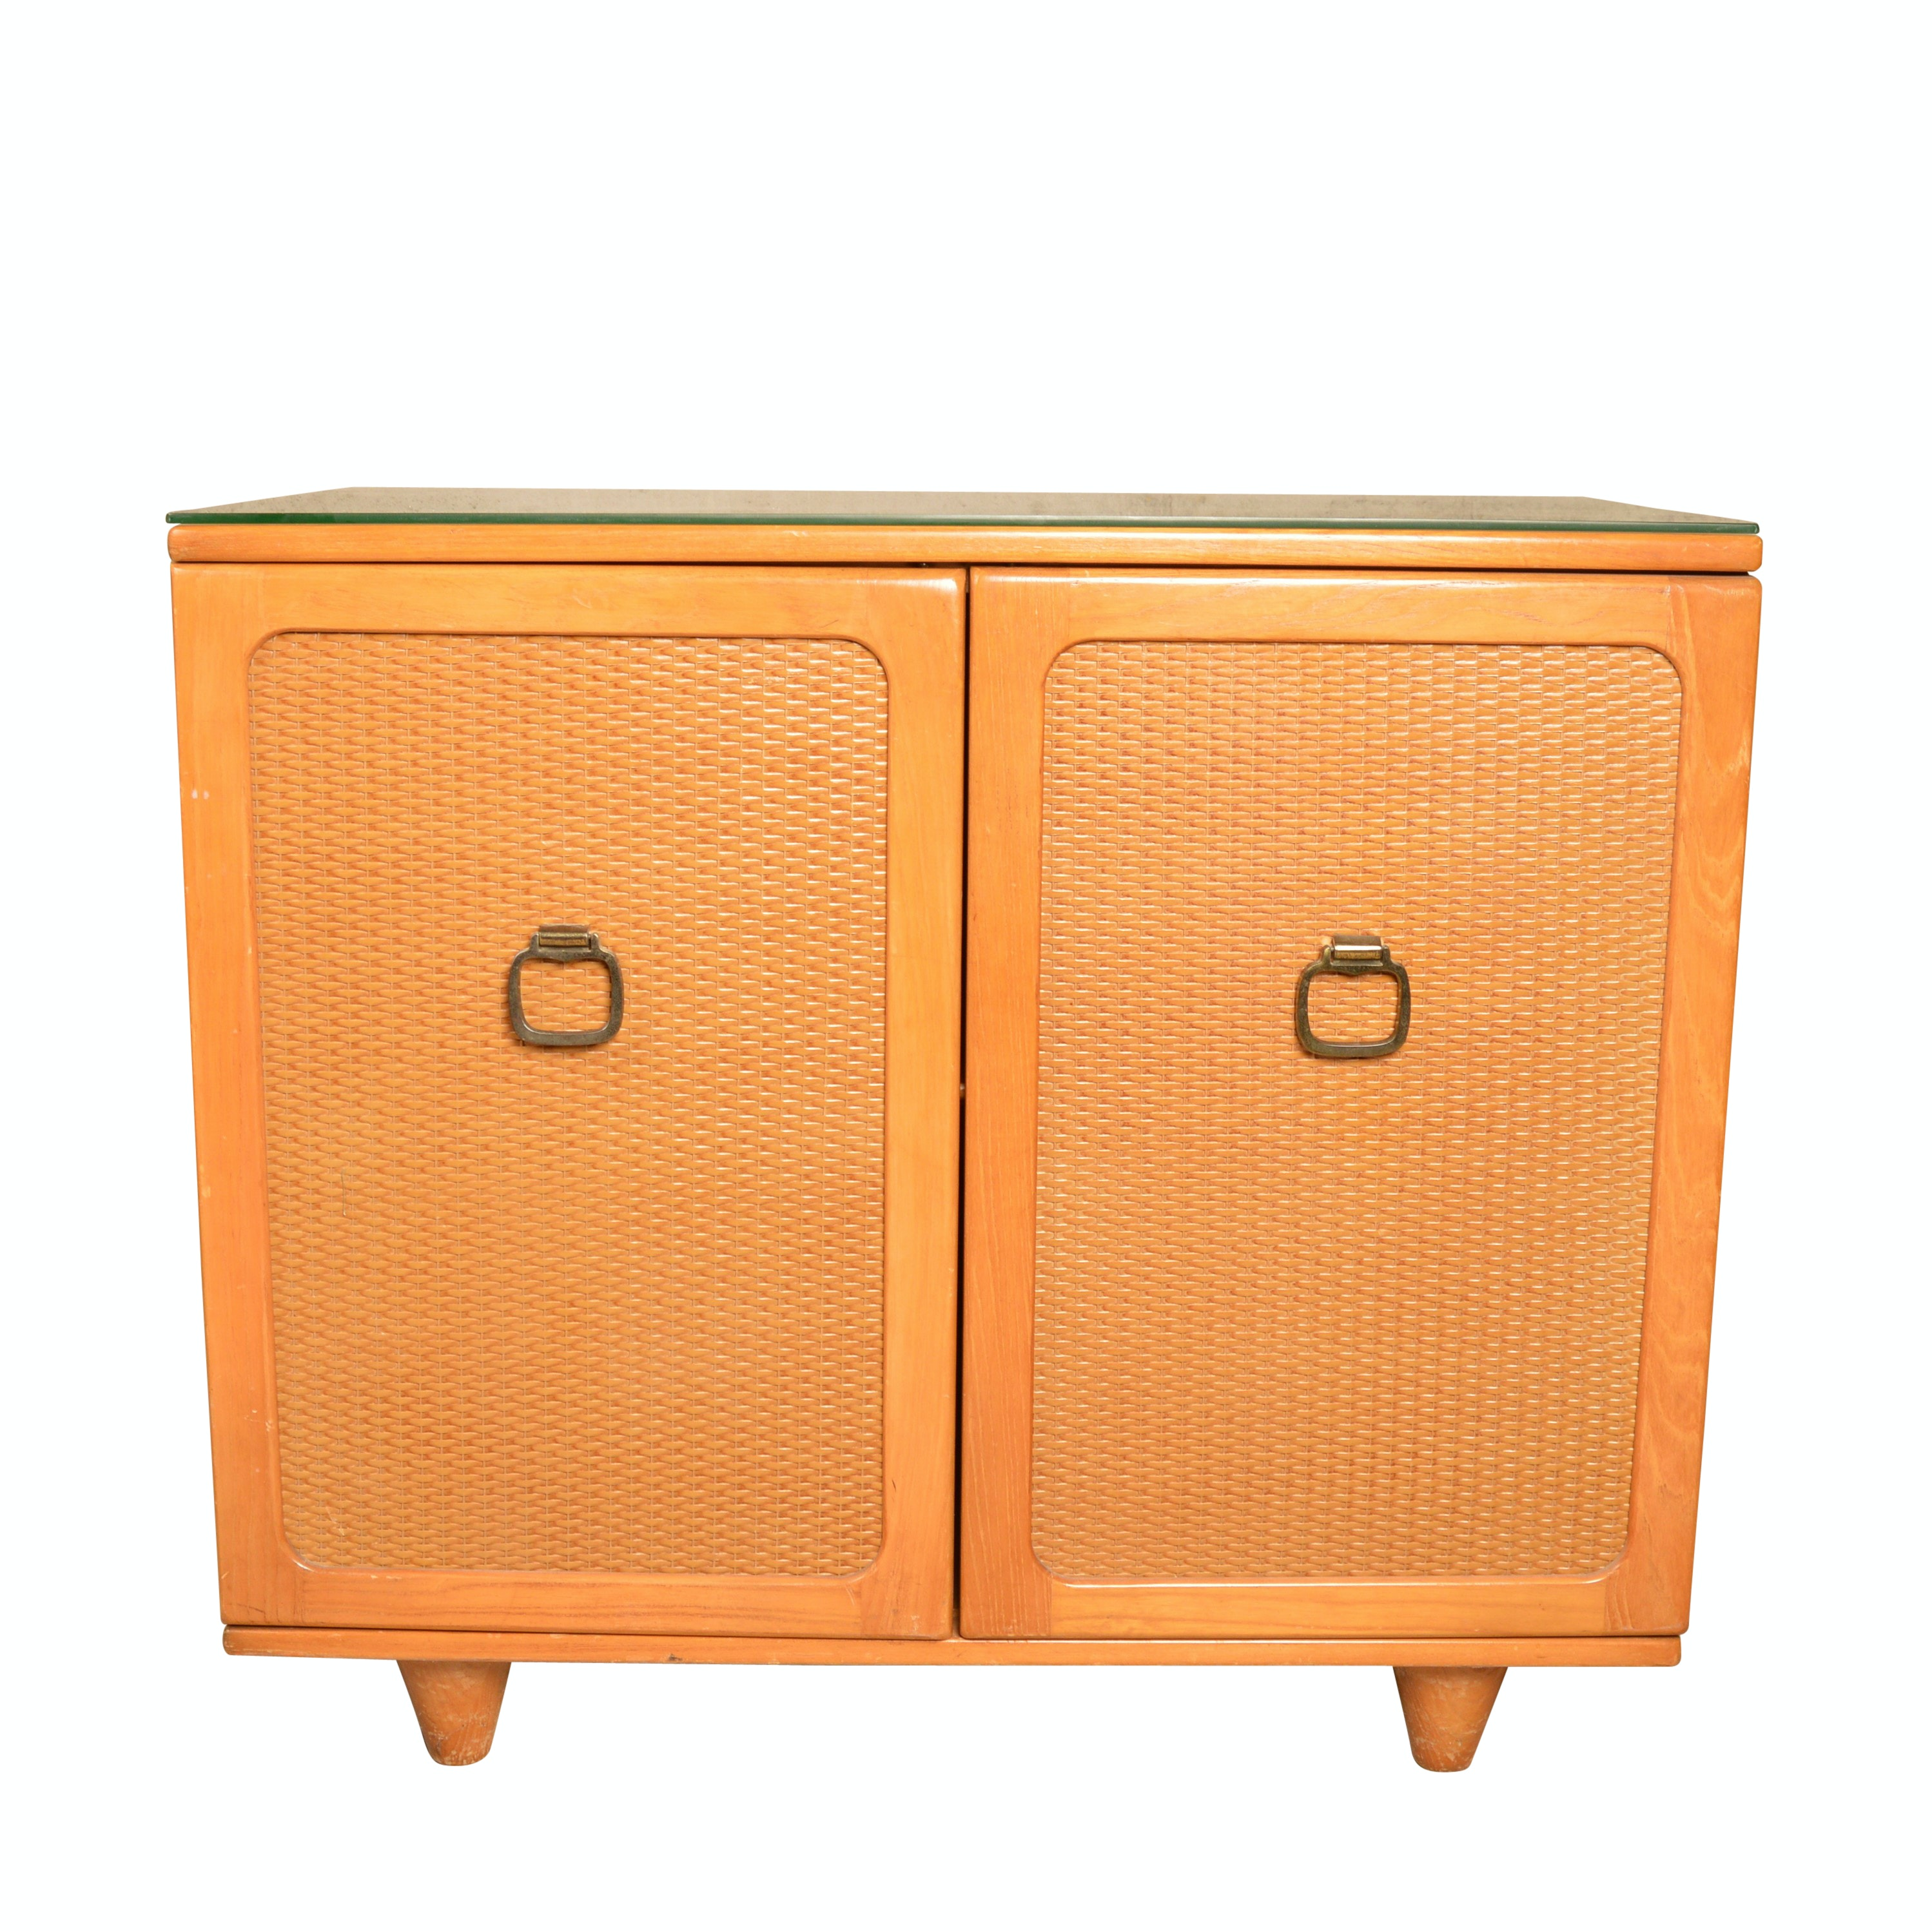 Blonde Figured Hardwood Credenza By Owosso Manufacturing ...